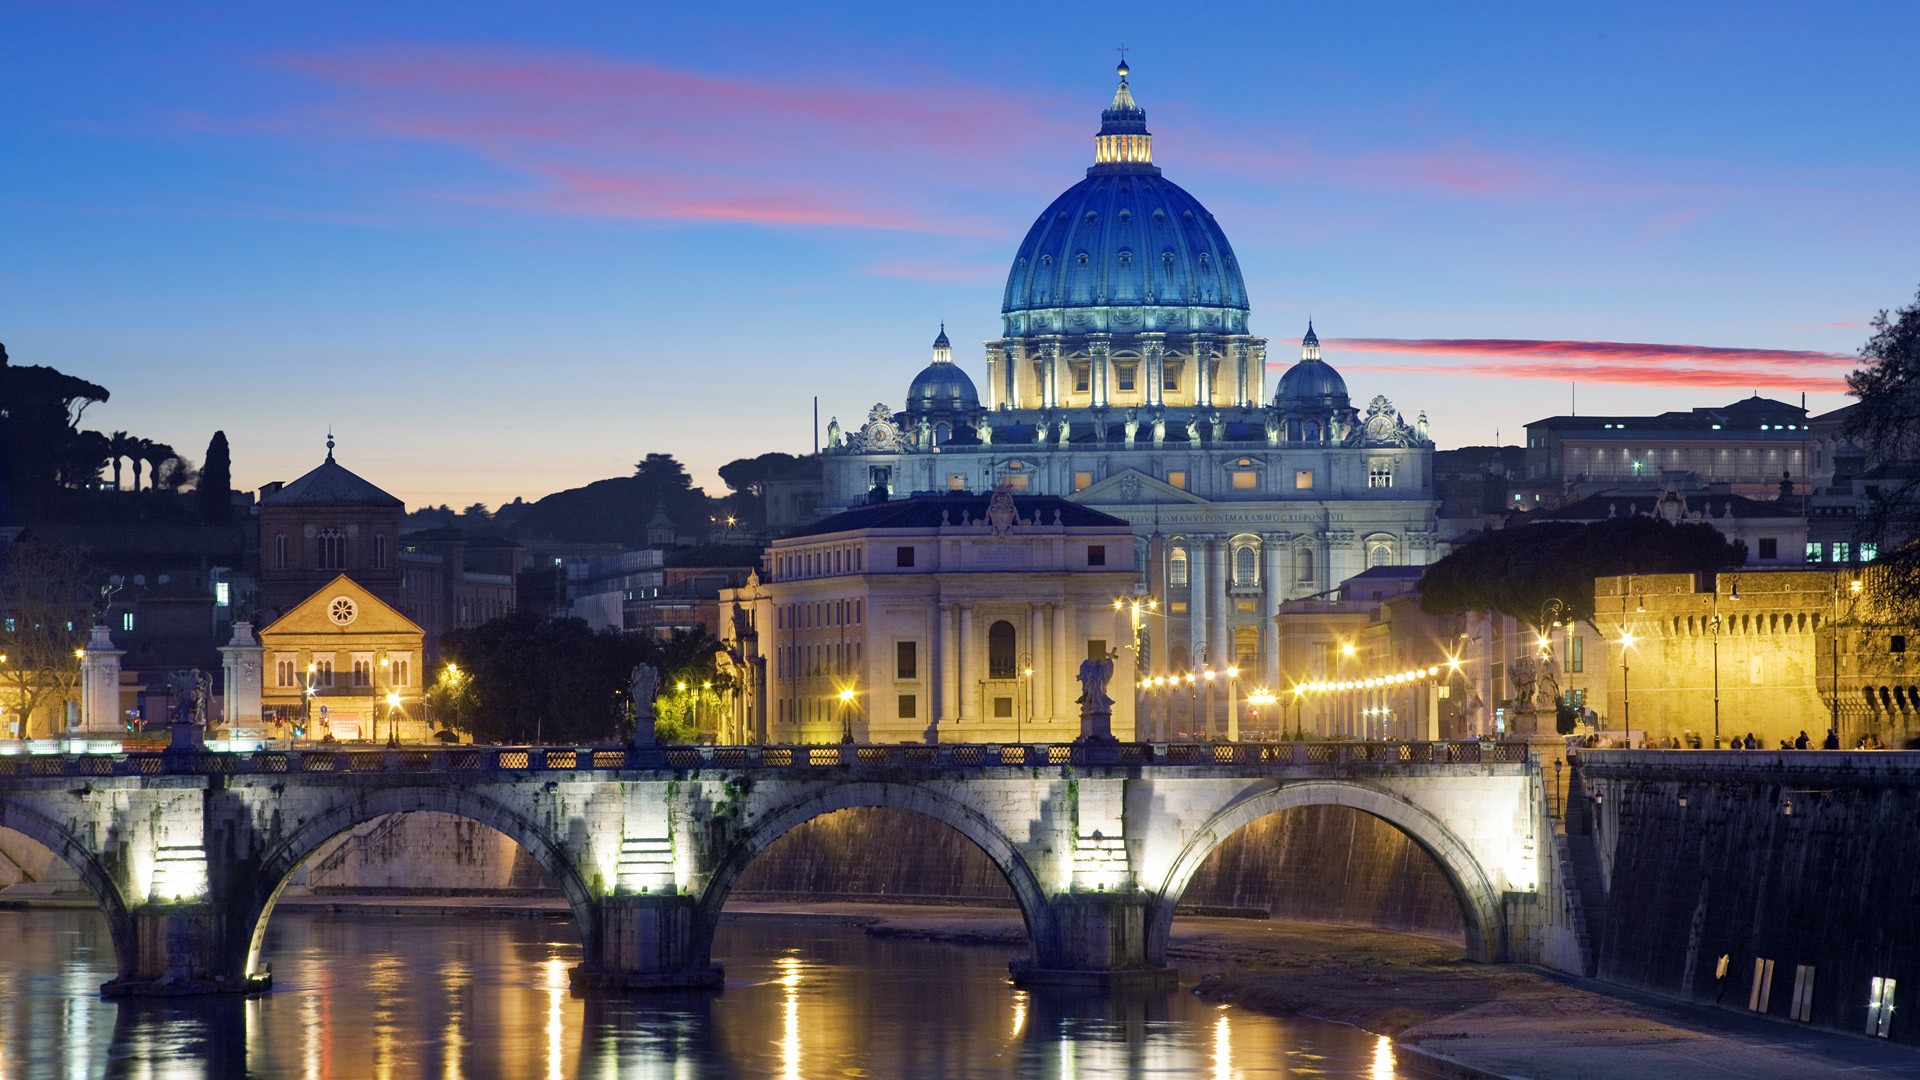 HD Quality Awesome Rome Wallpaper 8 for Desktop Backgrounds - SiWallpaper 9026